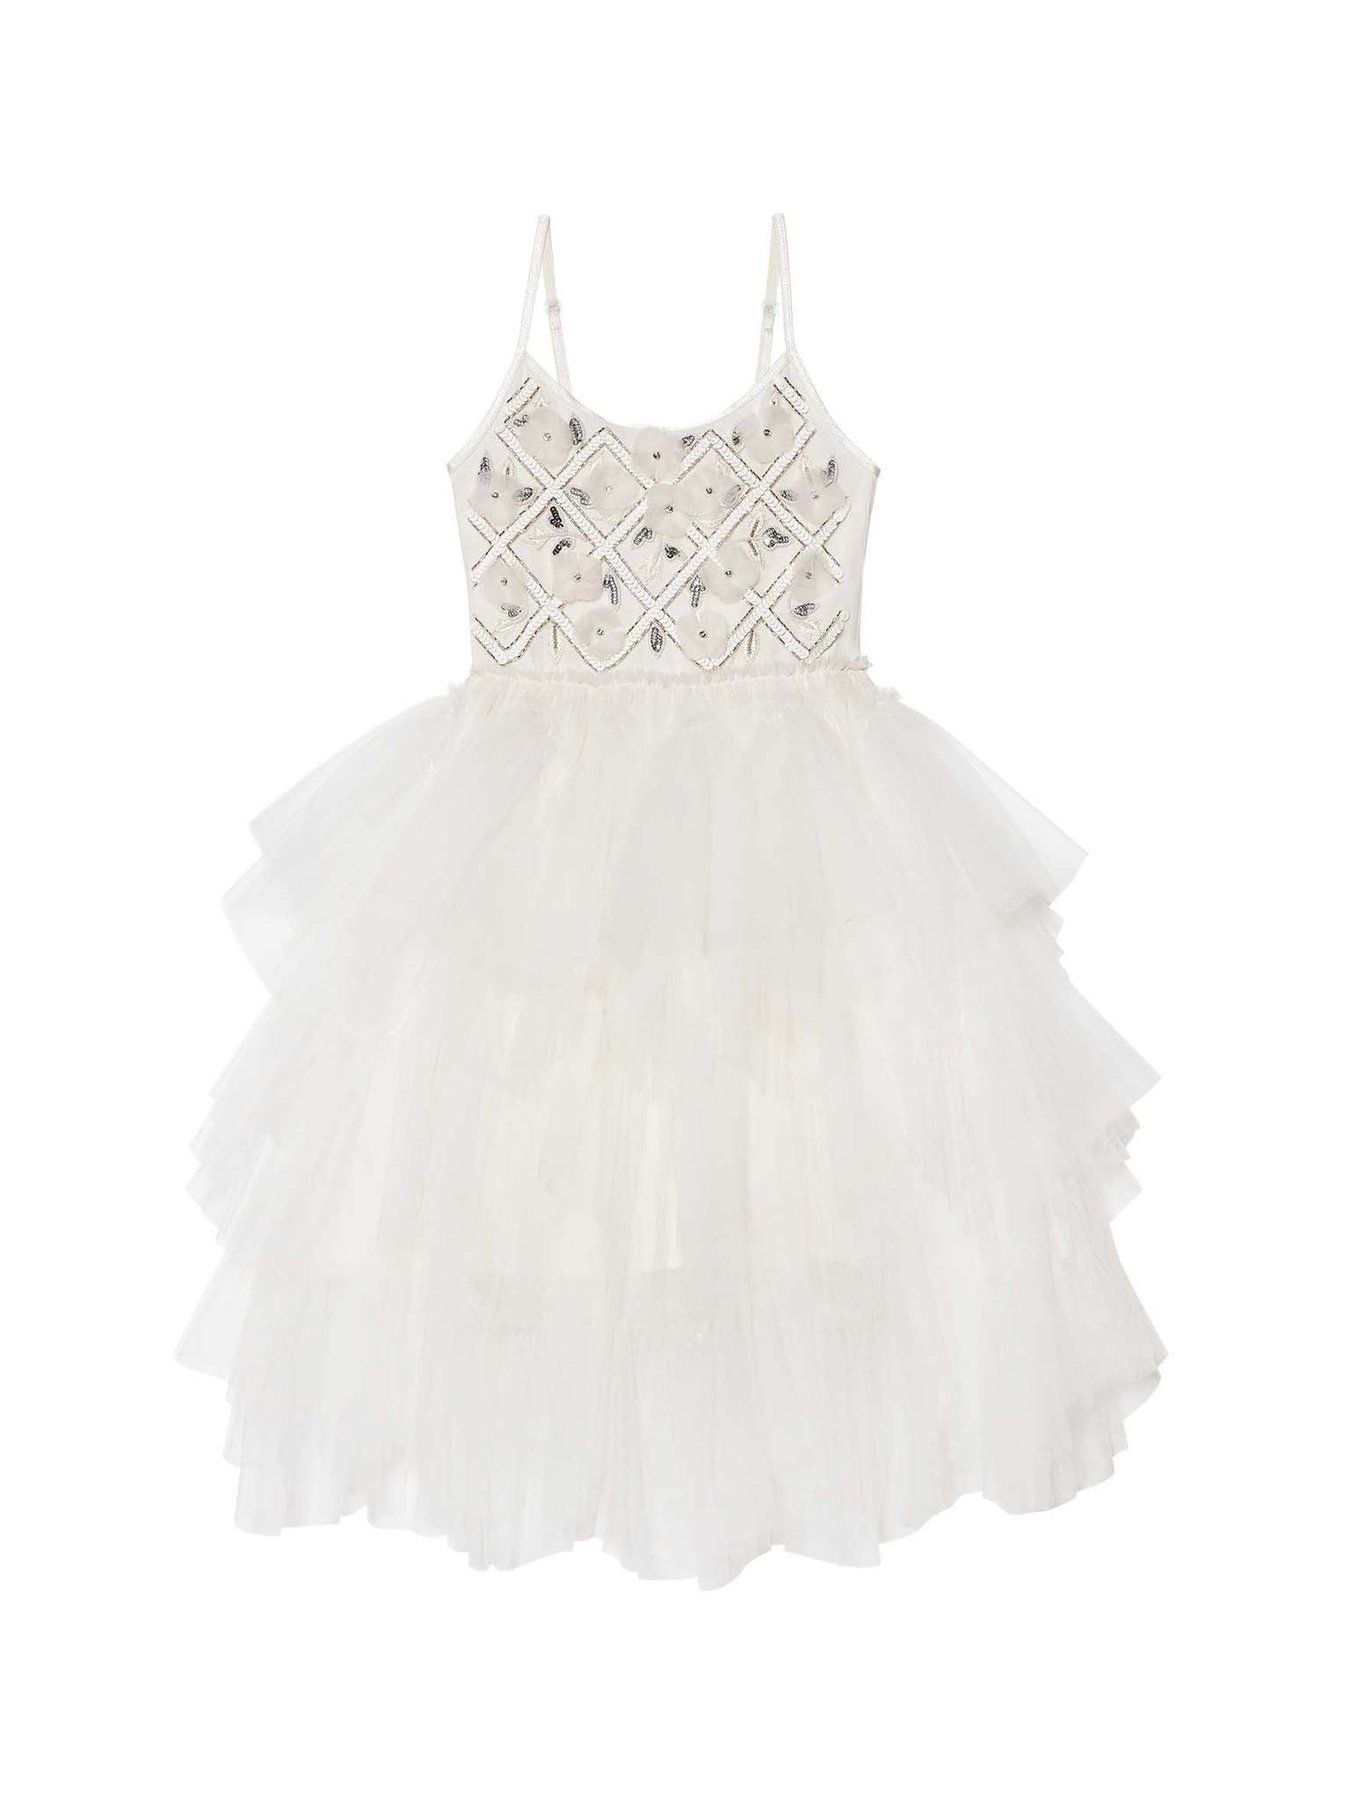 TDM5716 / WHITE / Cezanne Tutu Dress